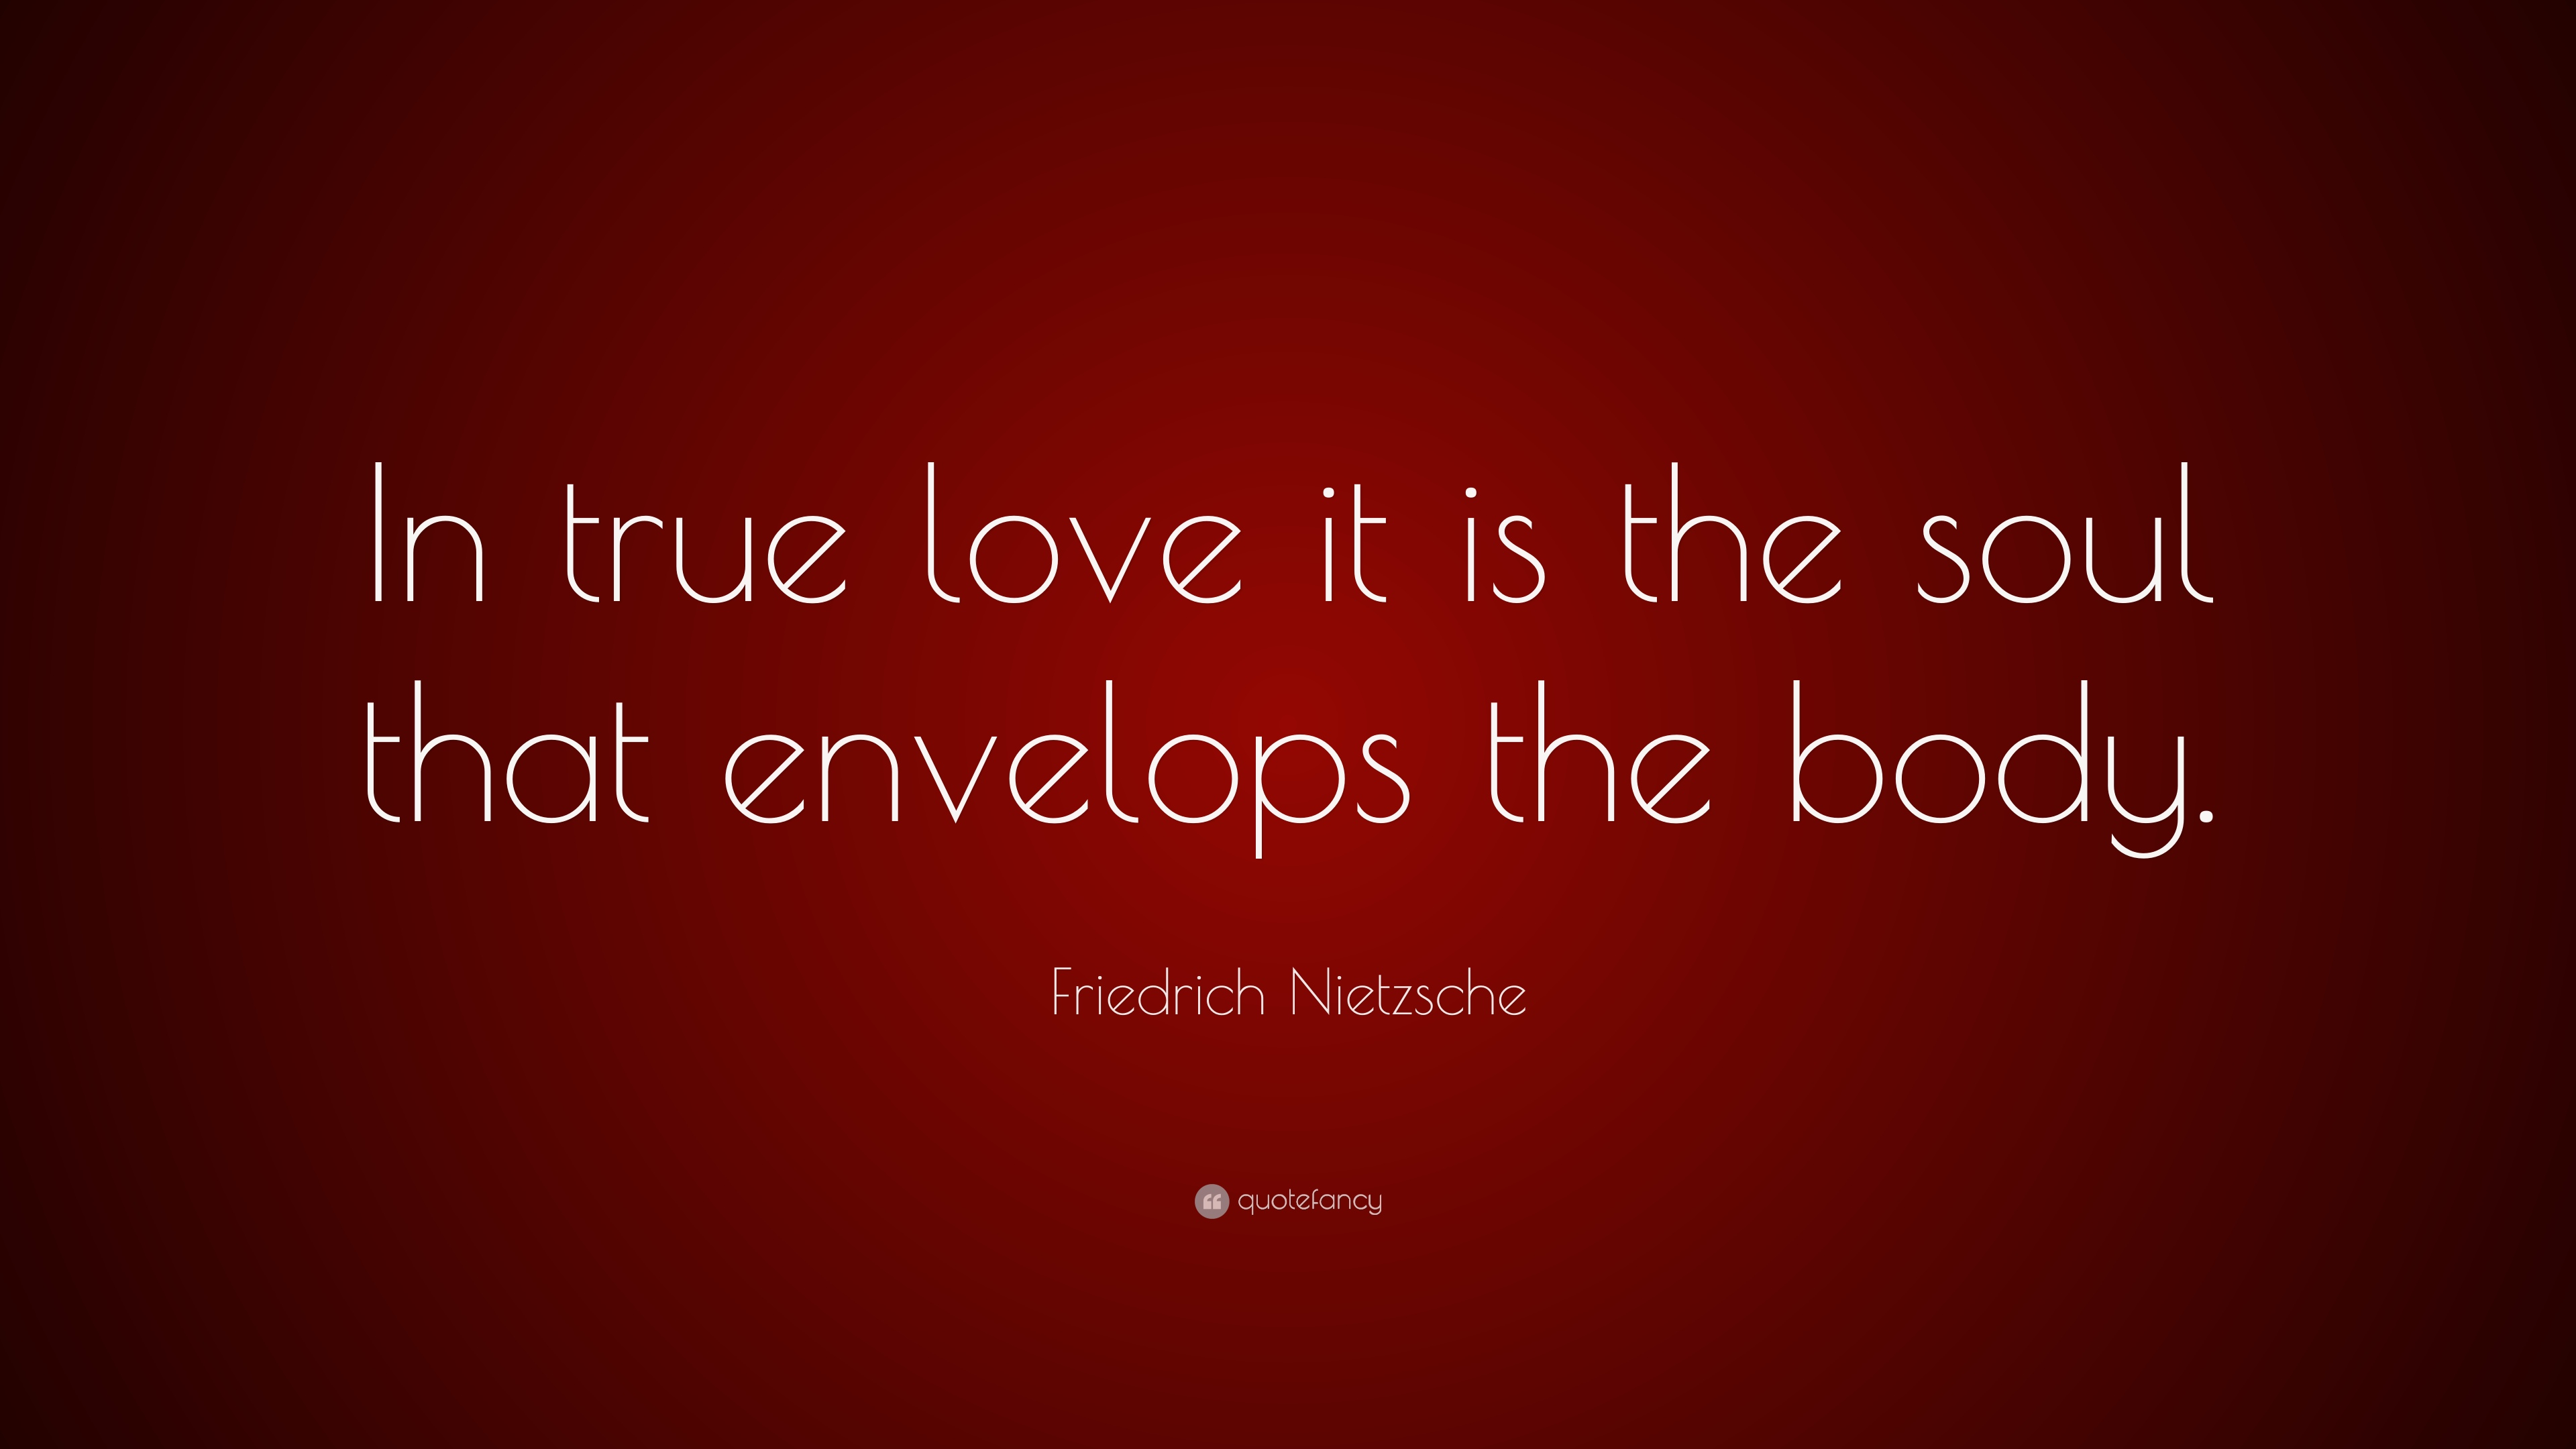 Friedrich Nietzsche Quote In True Love It Is The Soul That